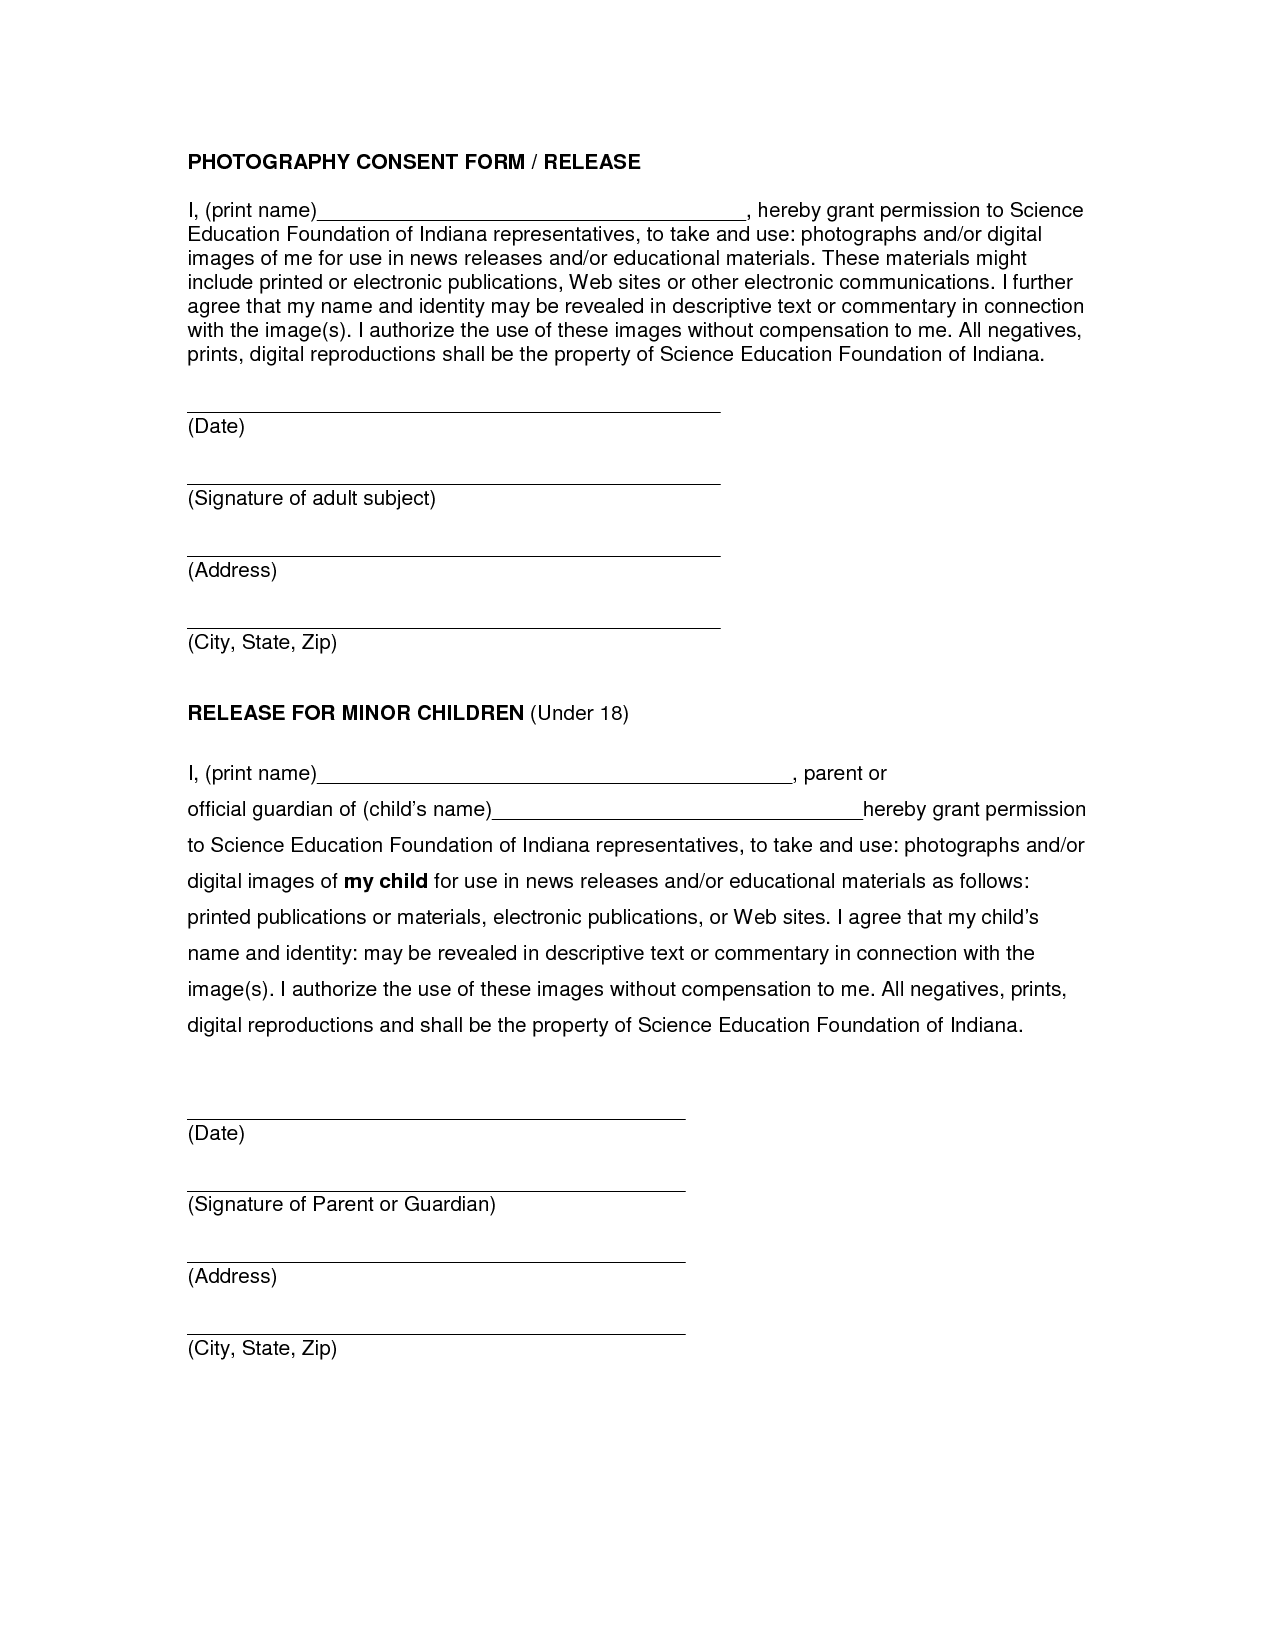 Photo release form template free printable documents for Photographic release form template